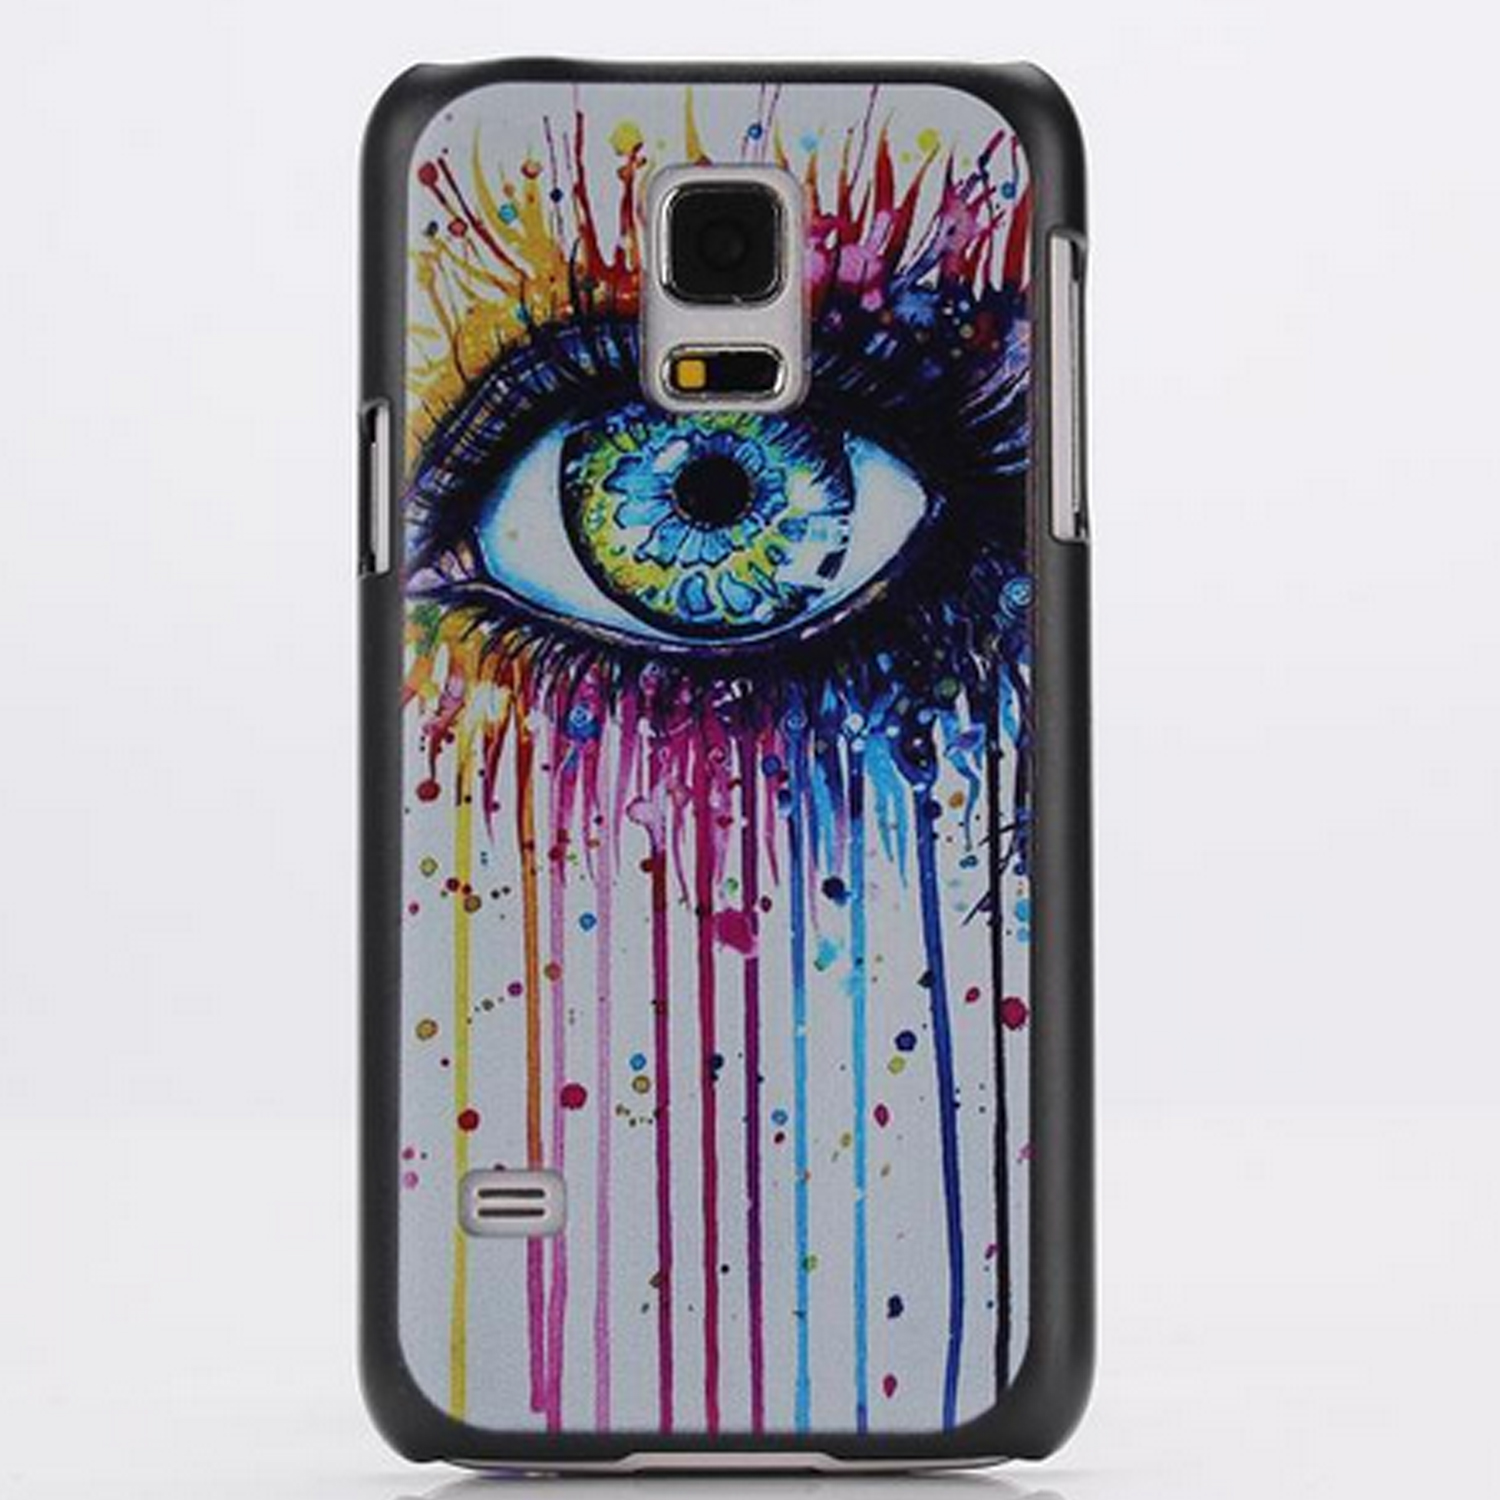 Kritzel Schutzhuellen Collection Galaxy S5 mini - Mod. 515